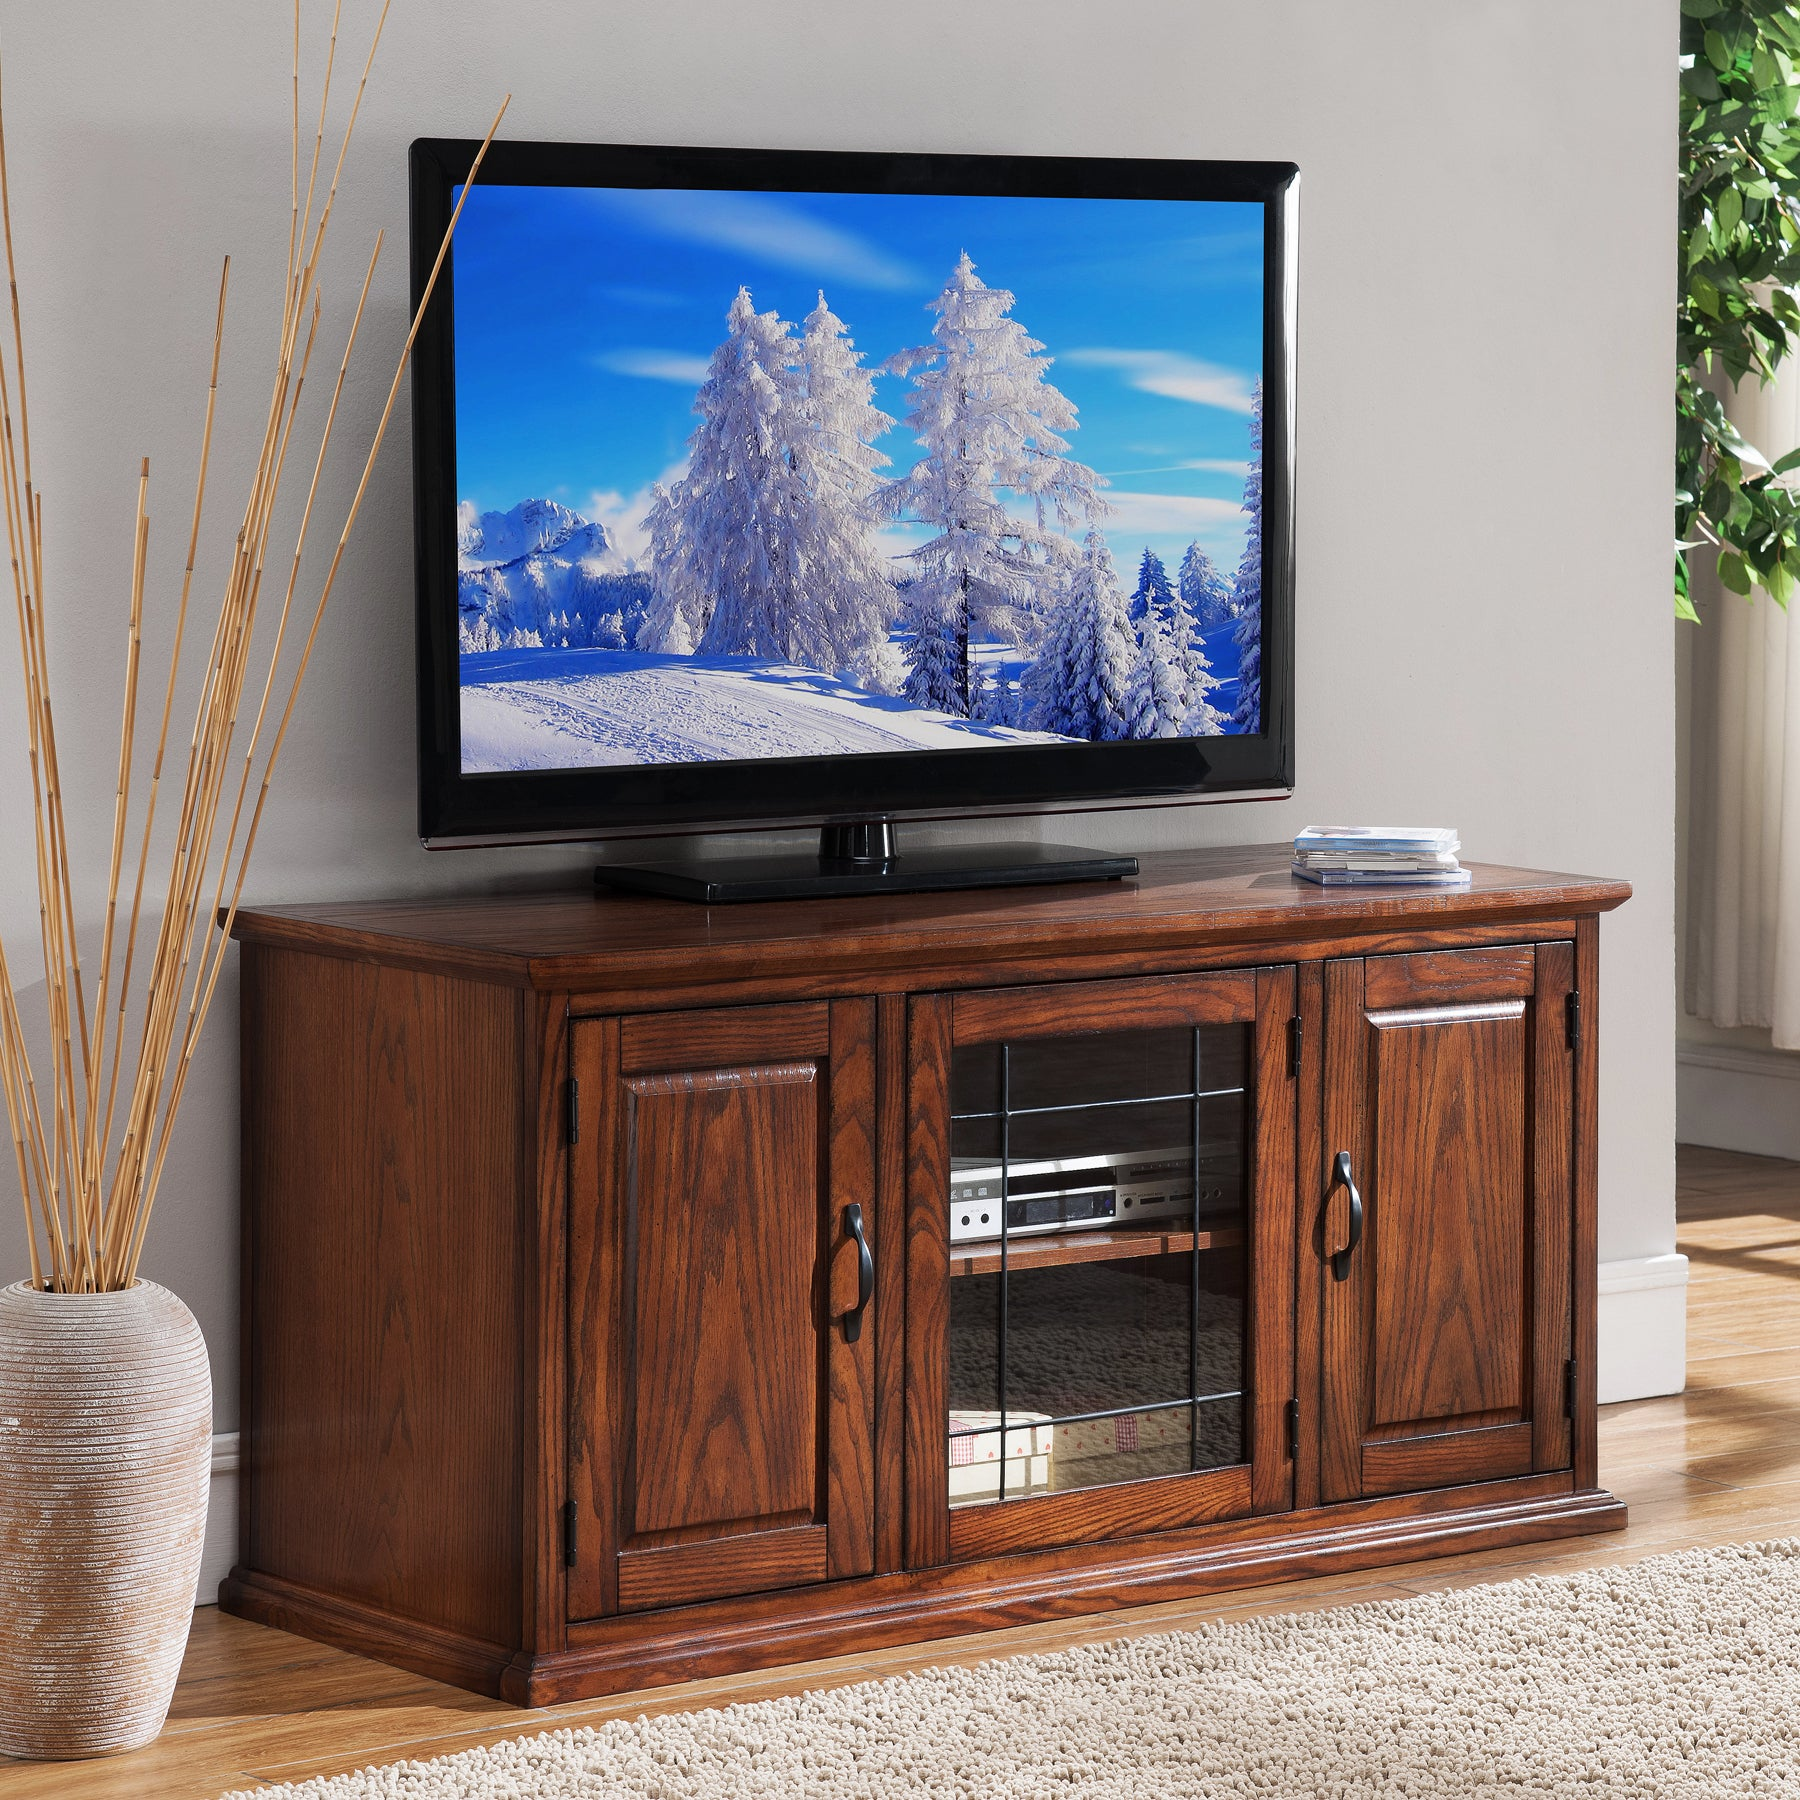 Shop Oak Wood Glass 50 Inch Leaded Tv Stand Free Shipping On